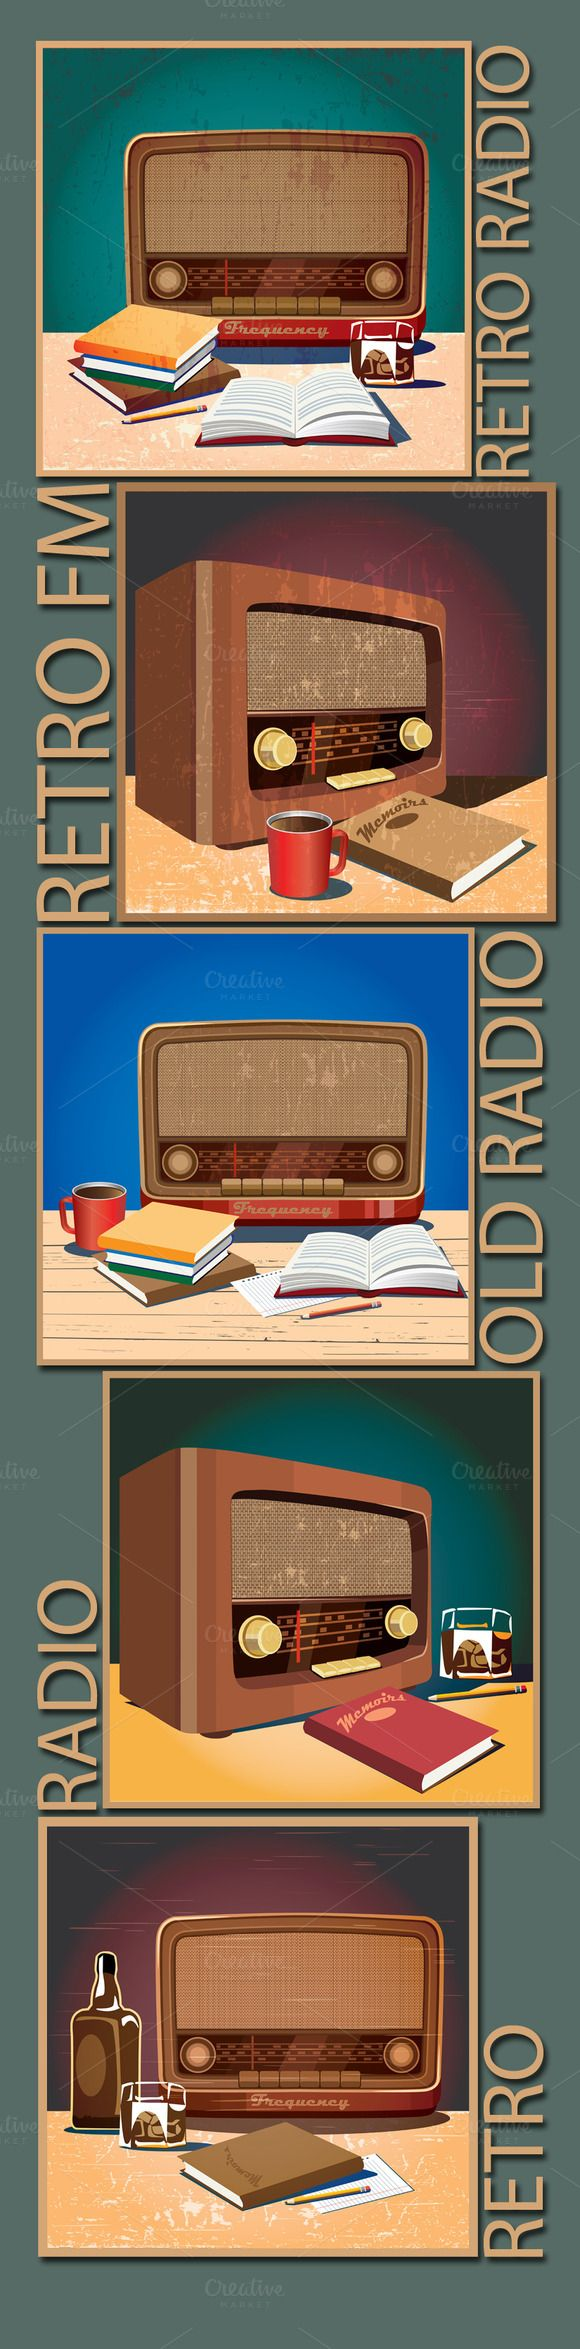 Retro Radio Set by Blacklight on Creative Market